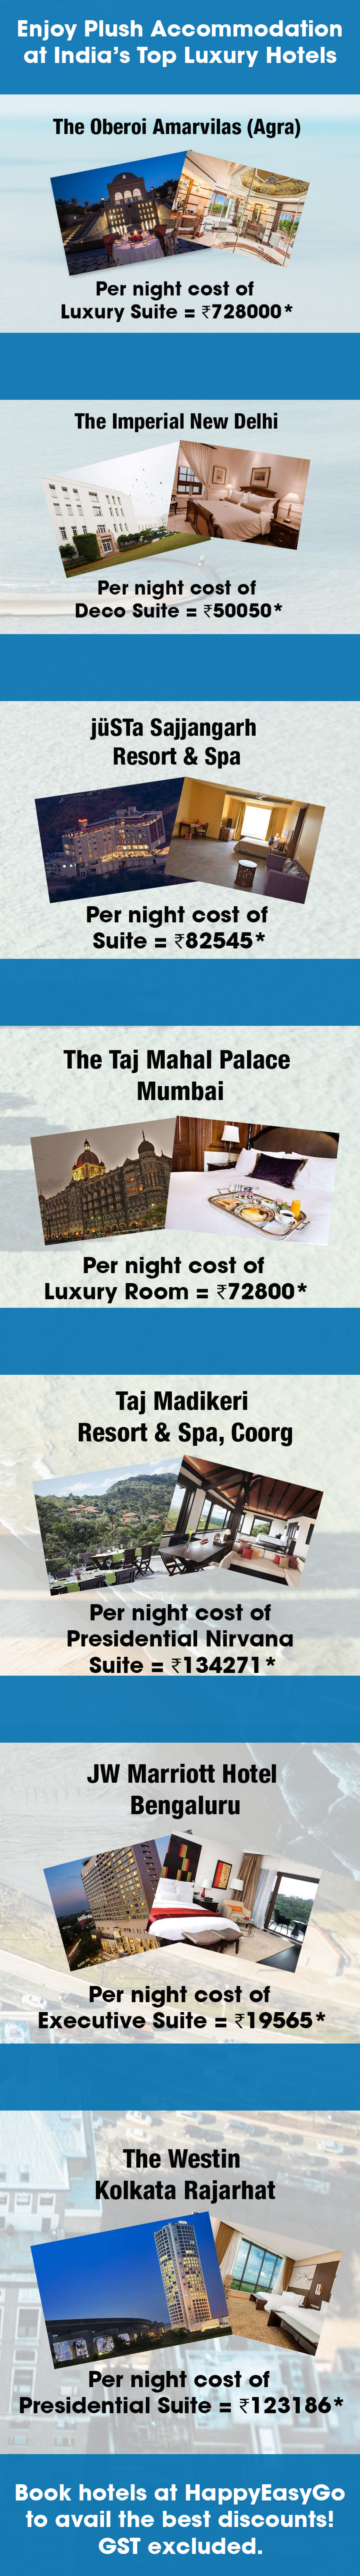 Book India's Top Luxury Hotels with HappyEasyGo at discounted price Infographic